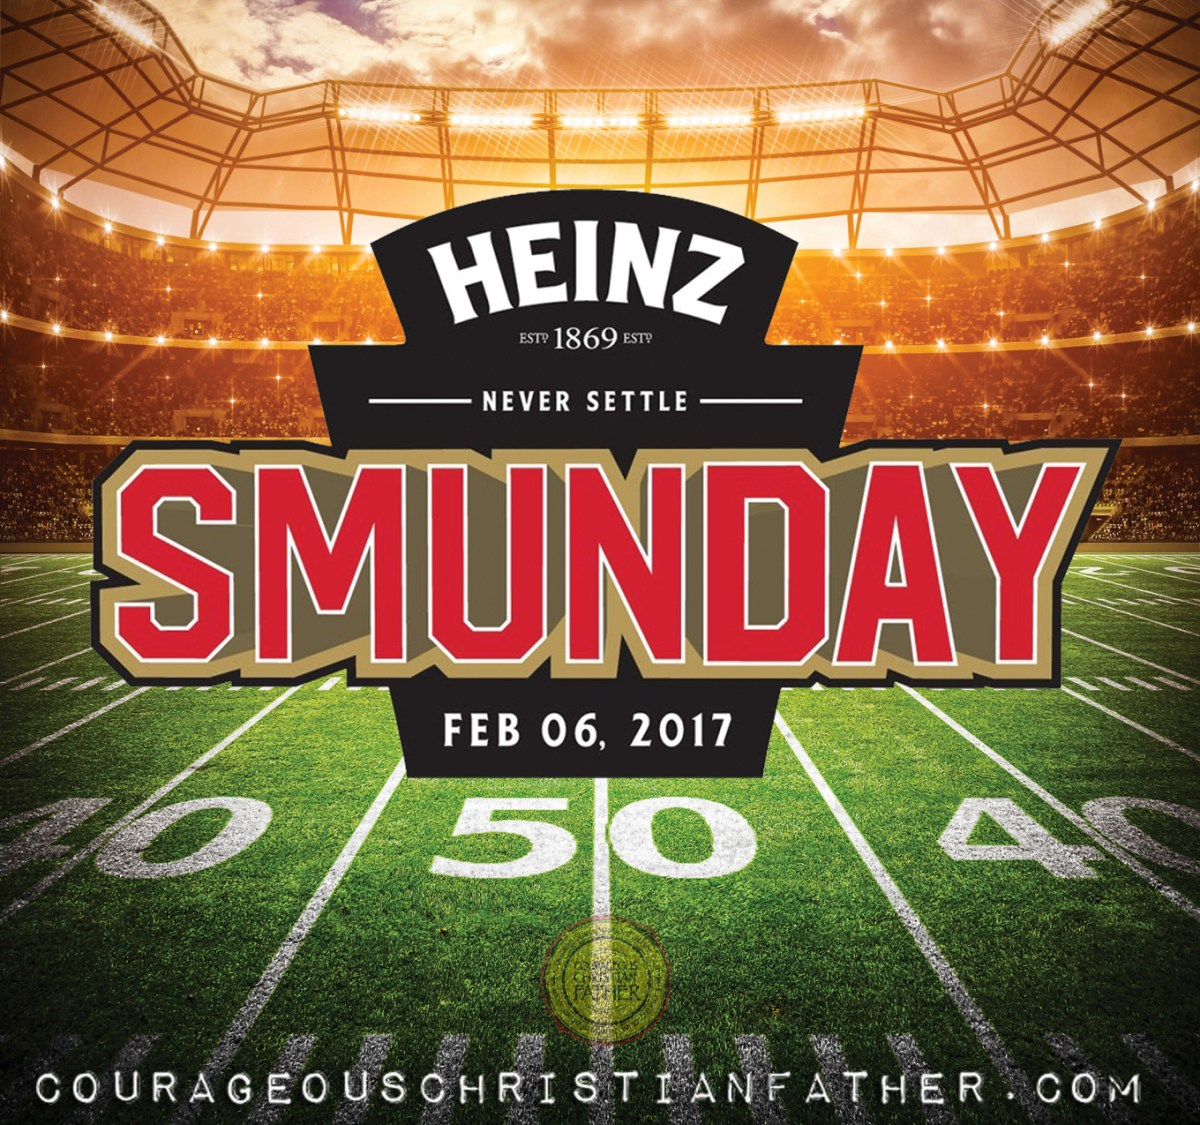 Smunday the Day After the Super Bowl